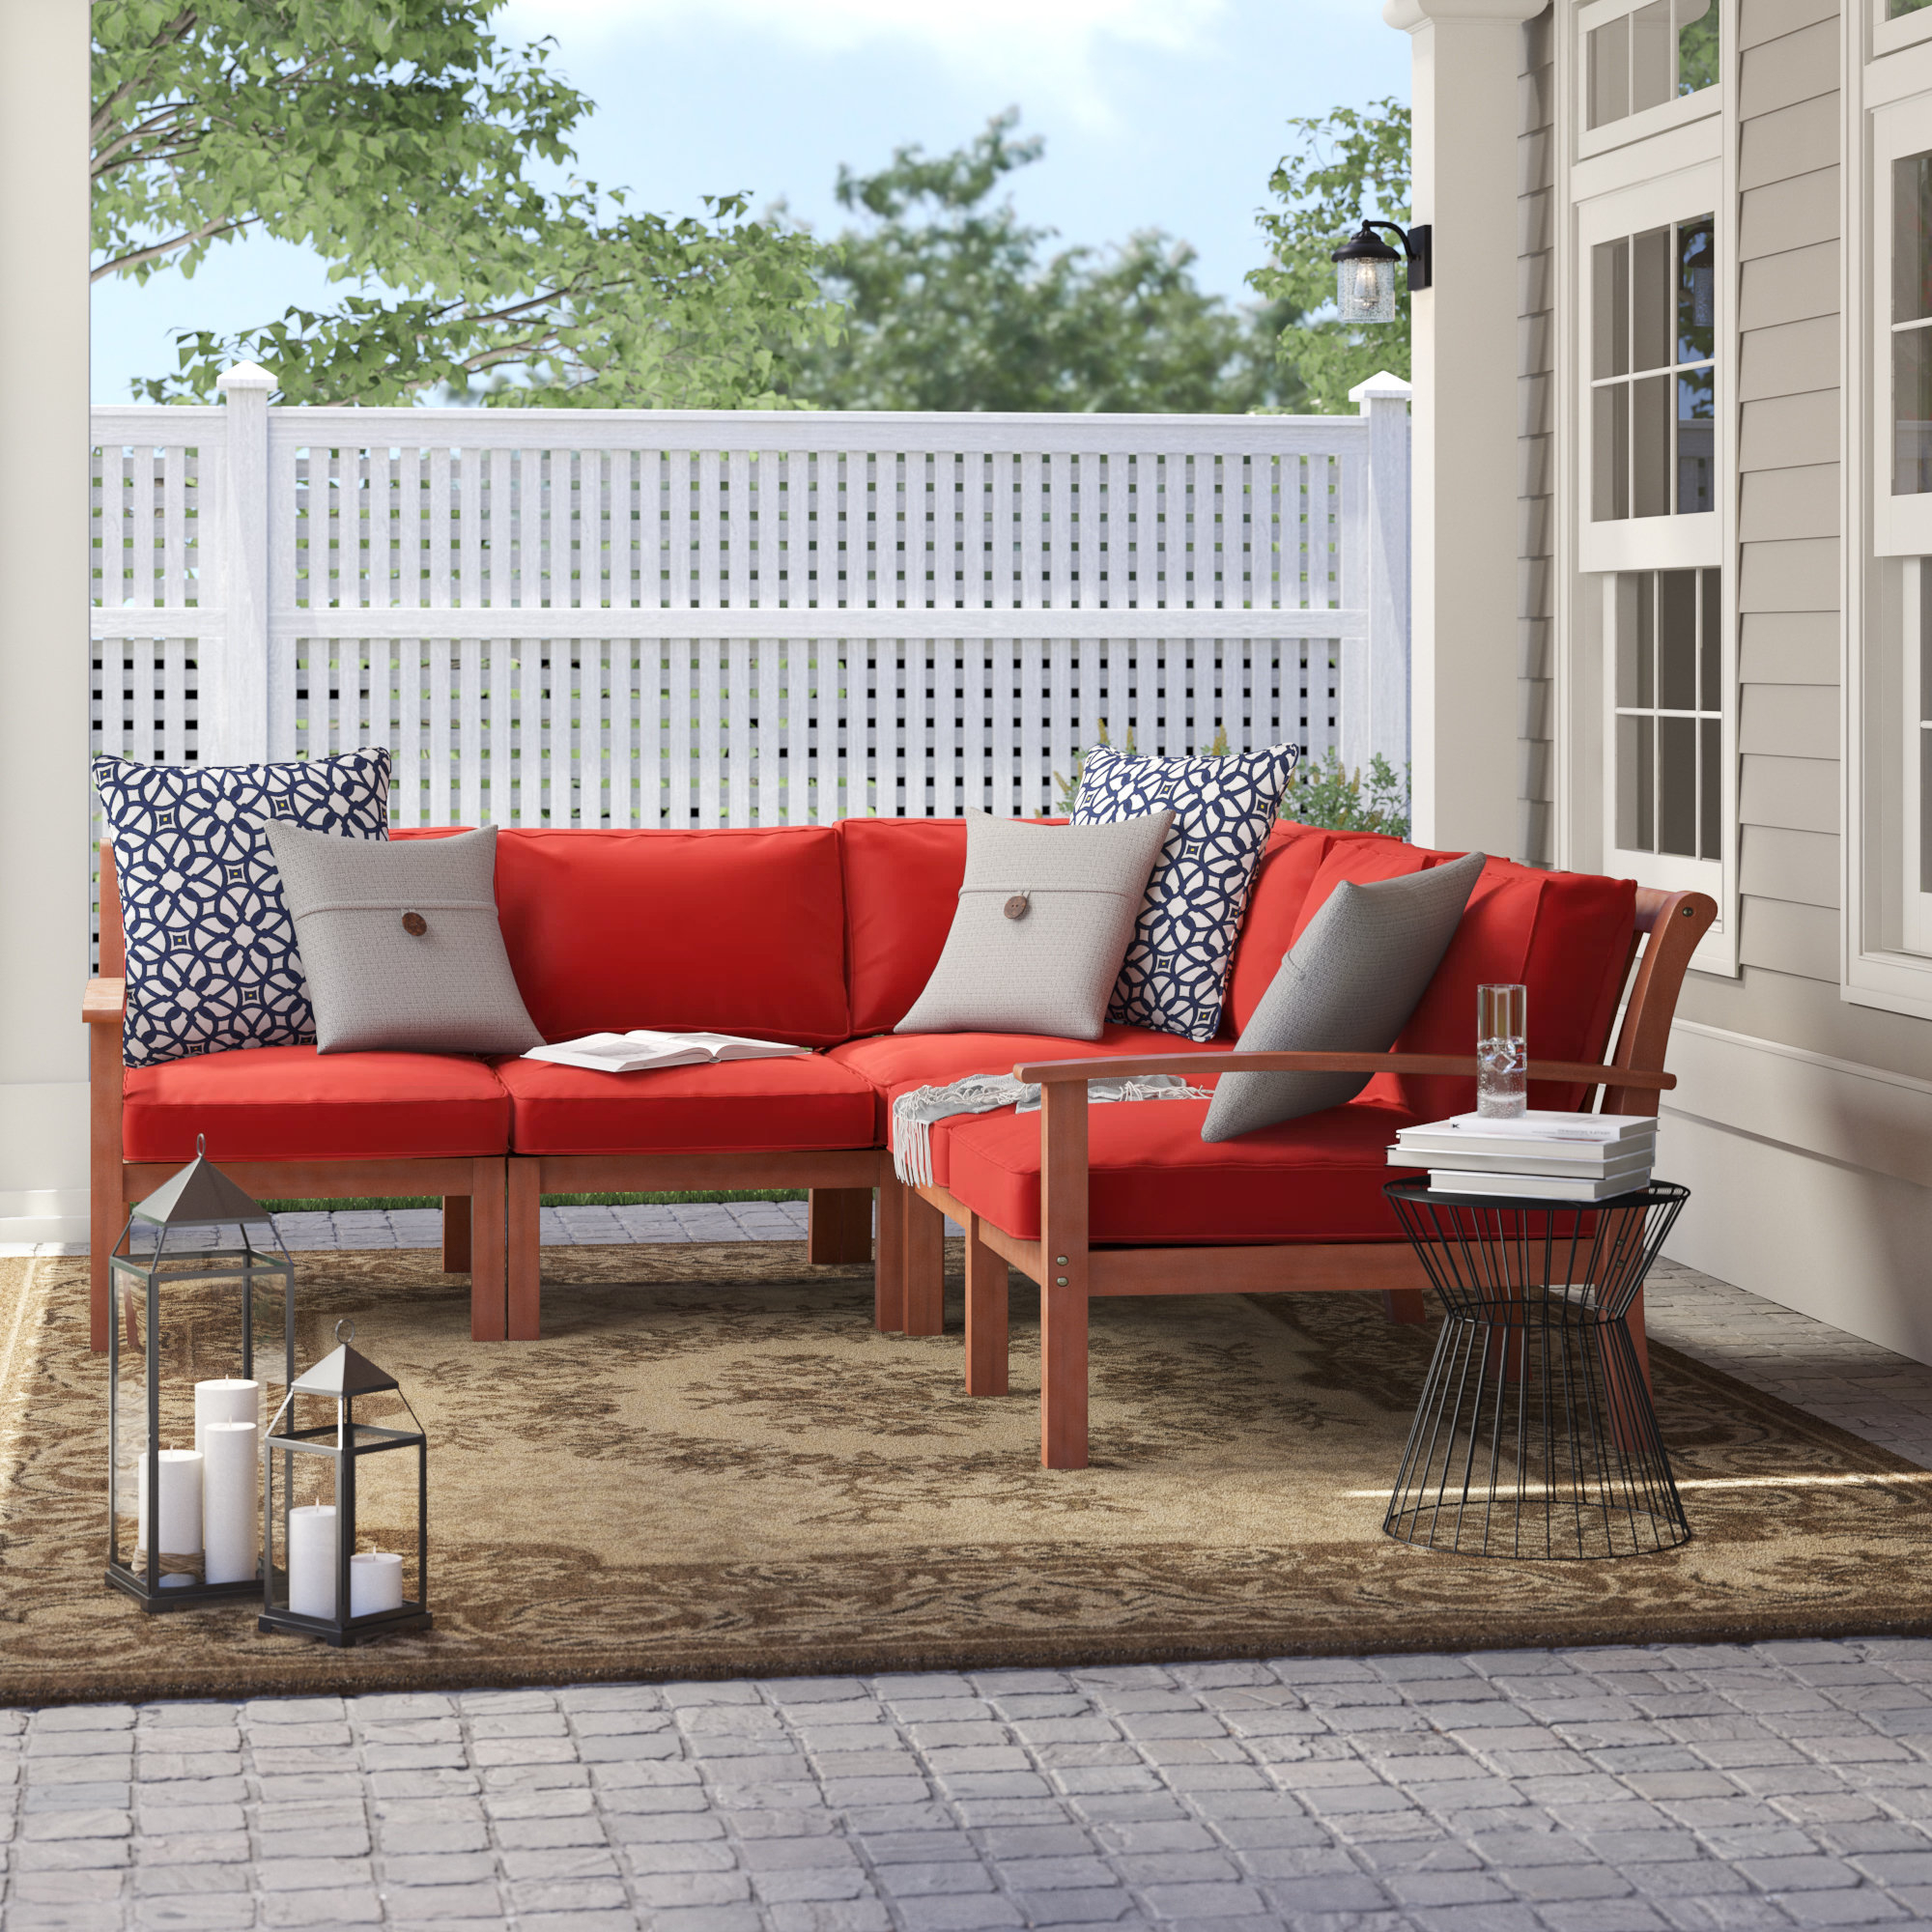 Current Rossi Patio Sectional With Cushions With Regard To Antonia Teak Patio Sectionals With Cushions (View 18 of 25)